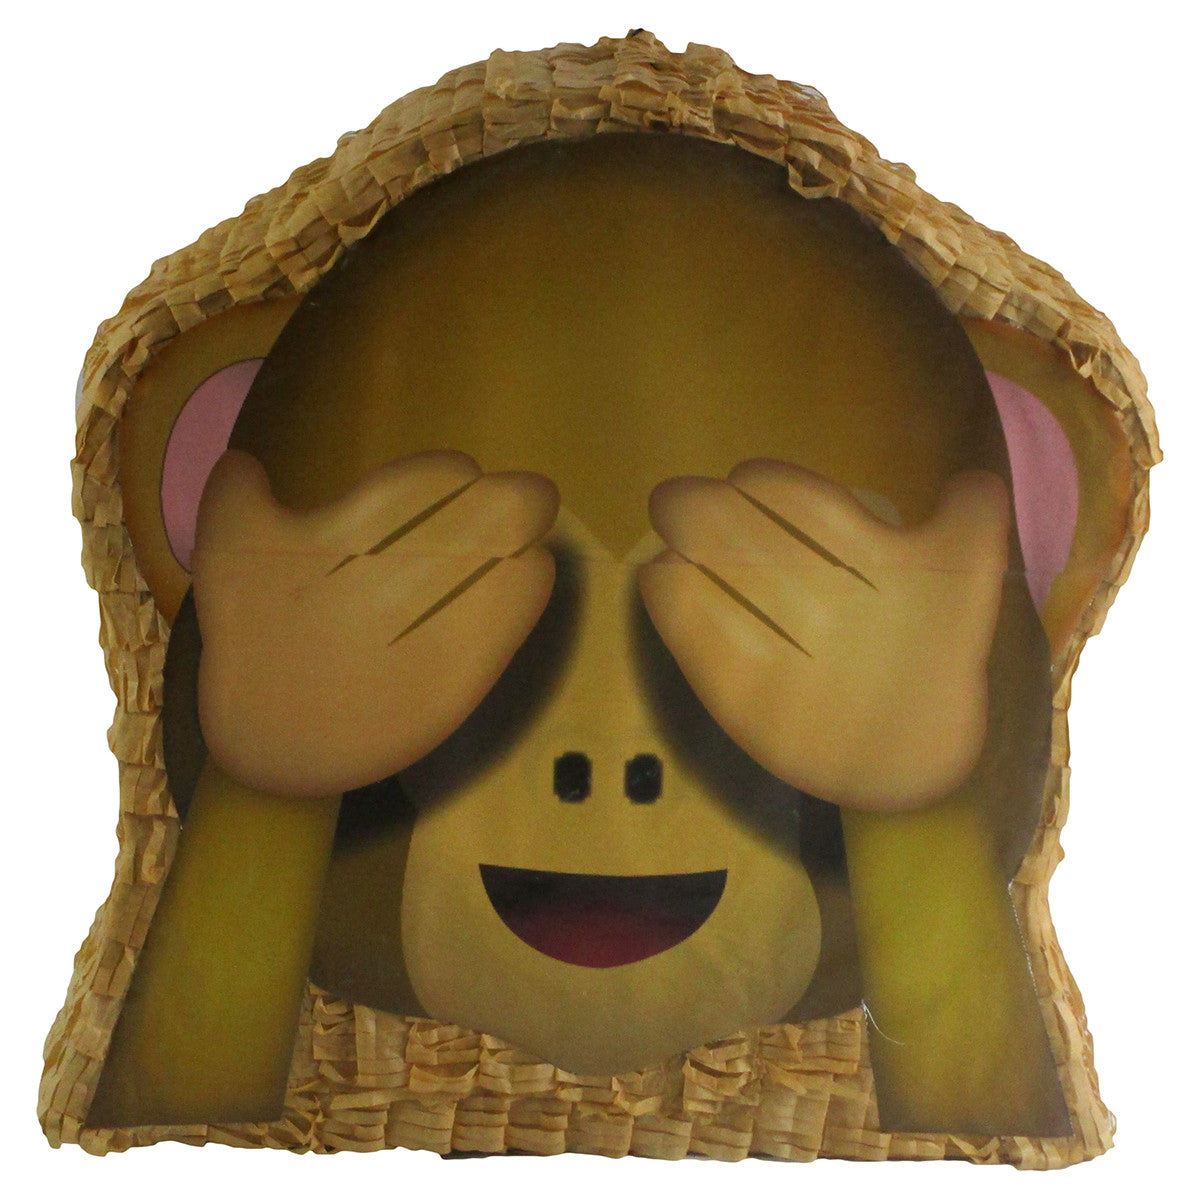 Medium See-No-Evil Monkey Emoji Icon Pinata